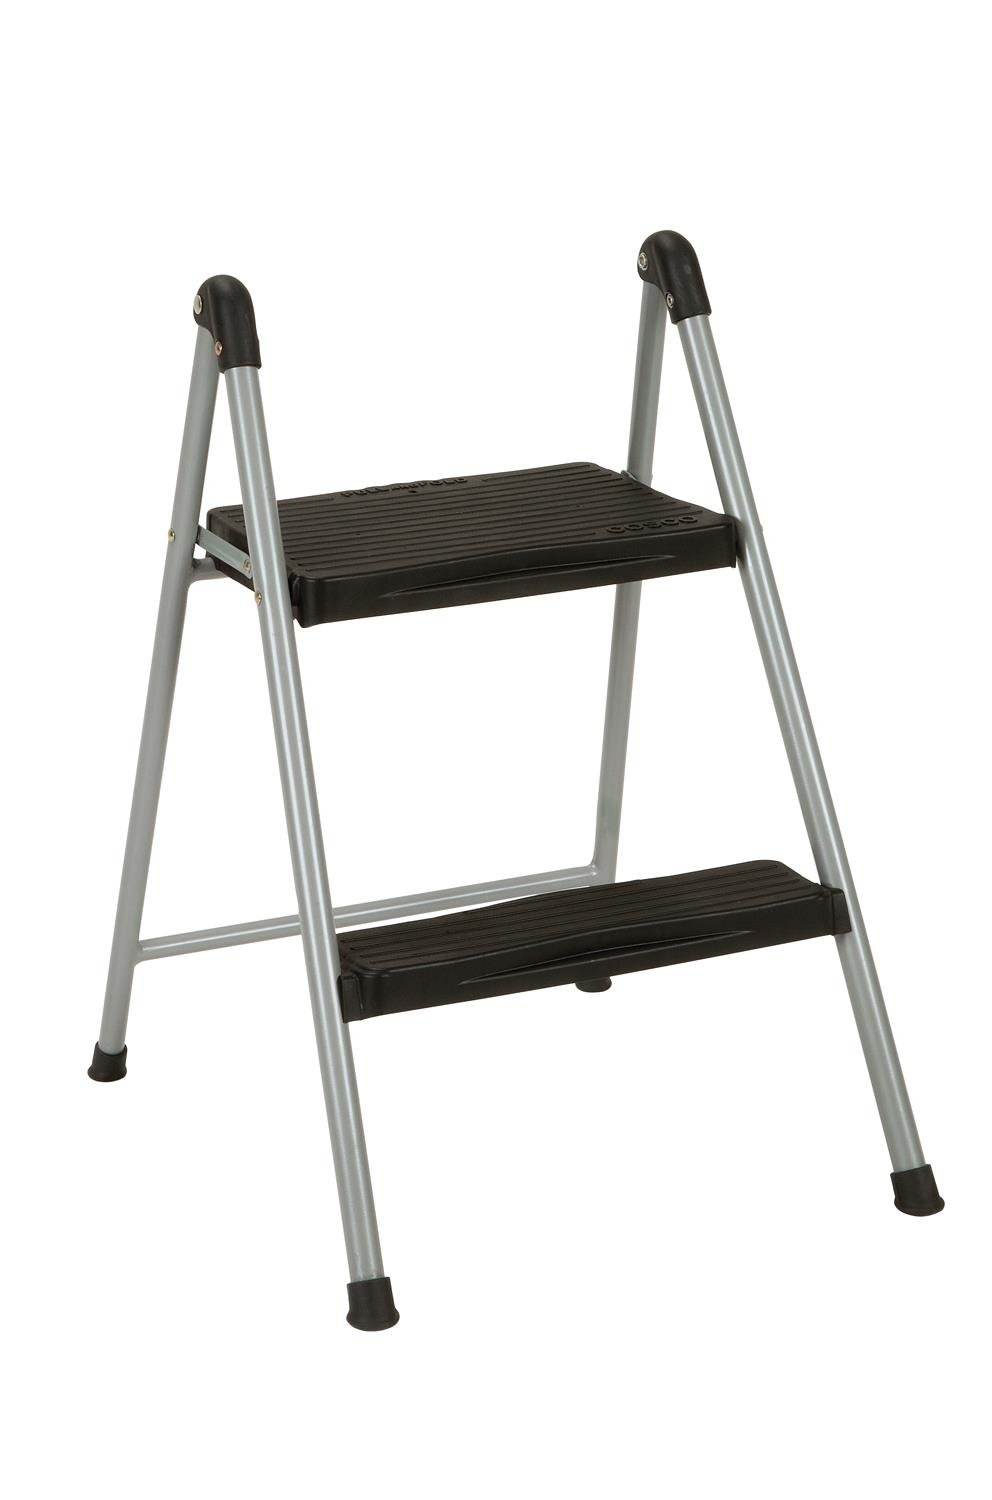 Amazon.com Cosco Dorel Industries Lightweight Folding Steel Step Stool Two Step Kitchen u0026 Dining  sc 1 st  Amazon.com : 2 step folding stool - islam-shia.org